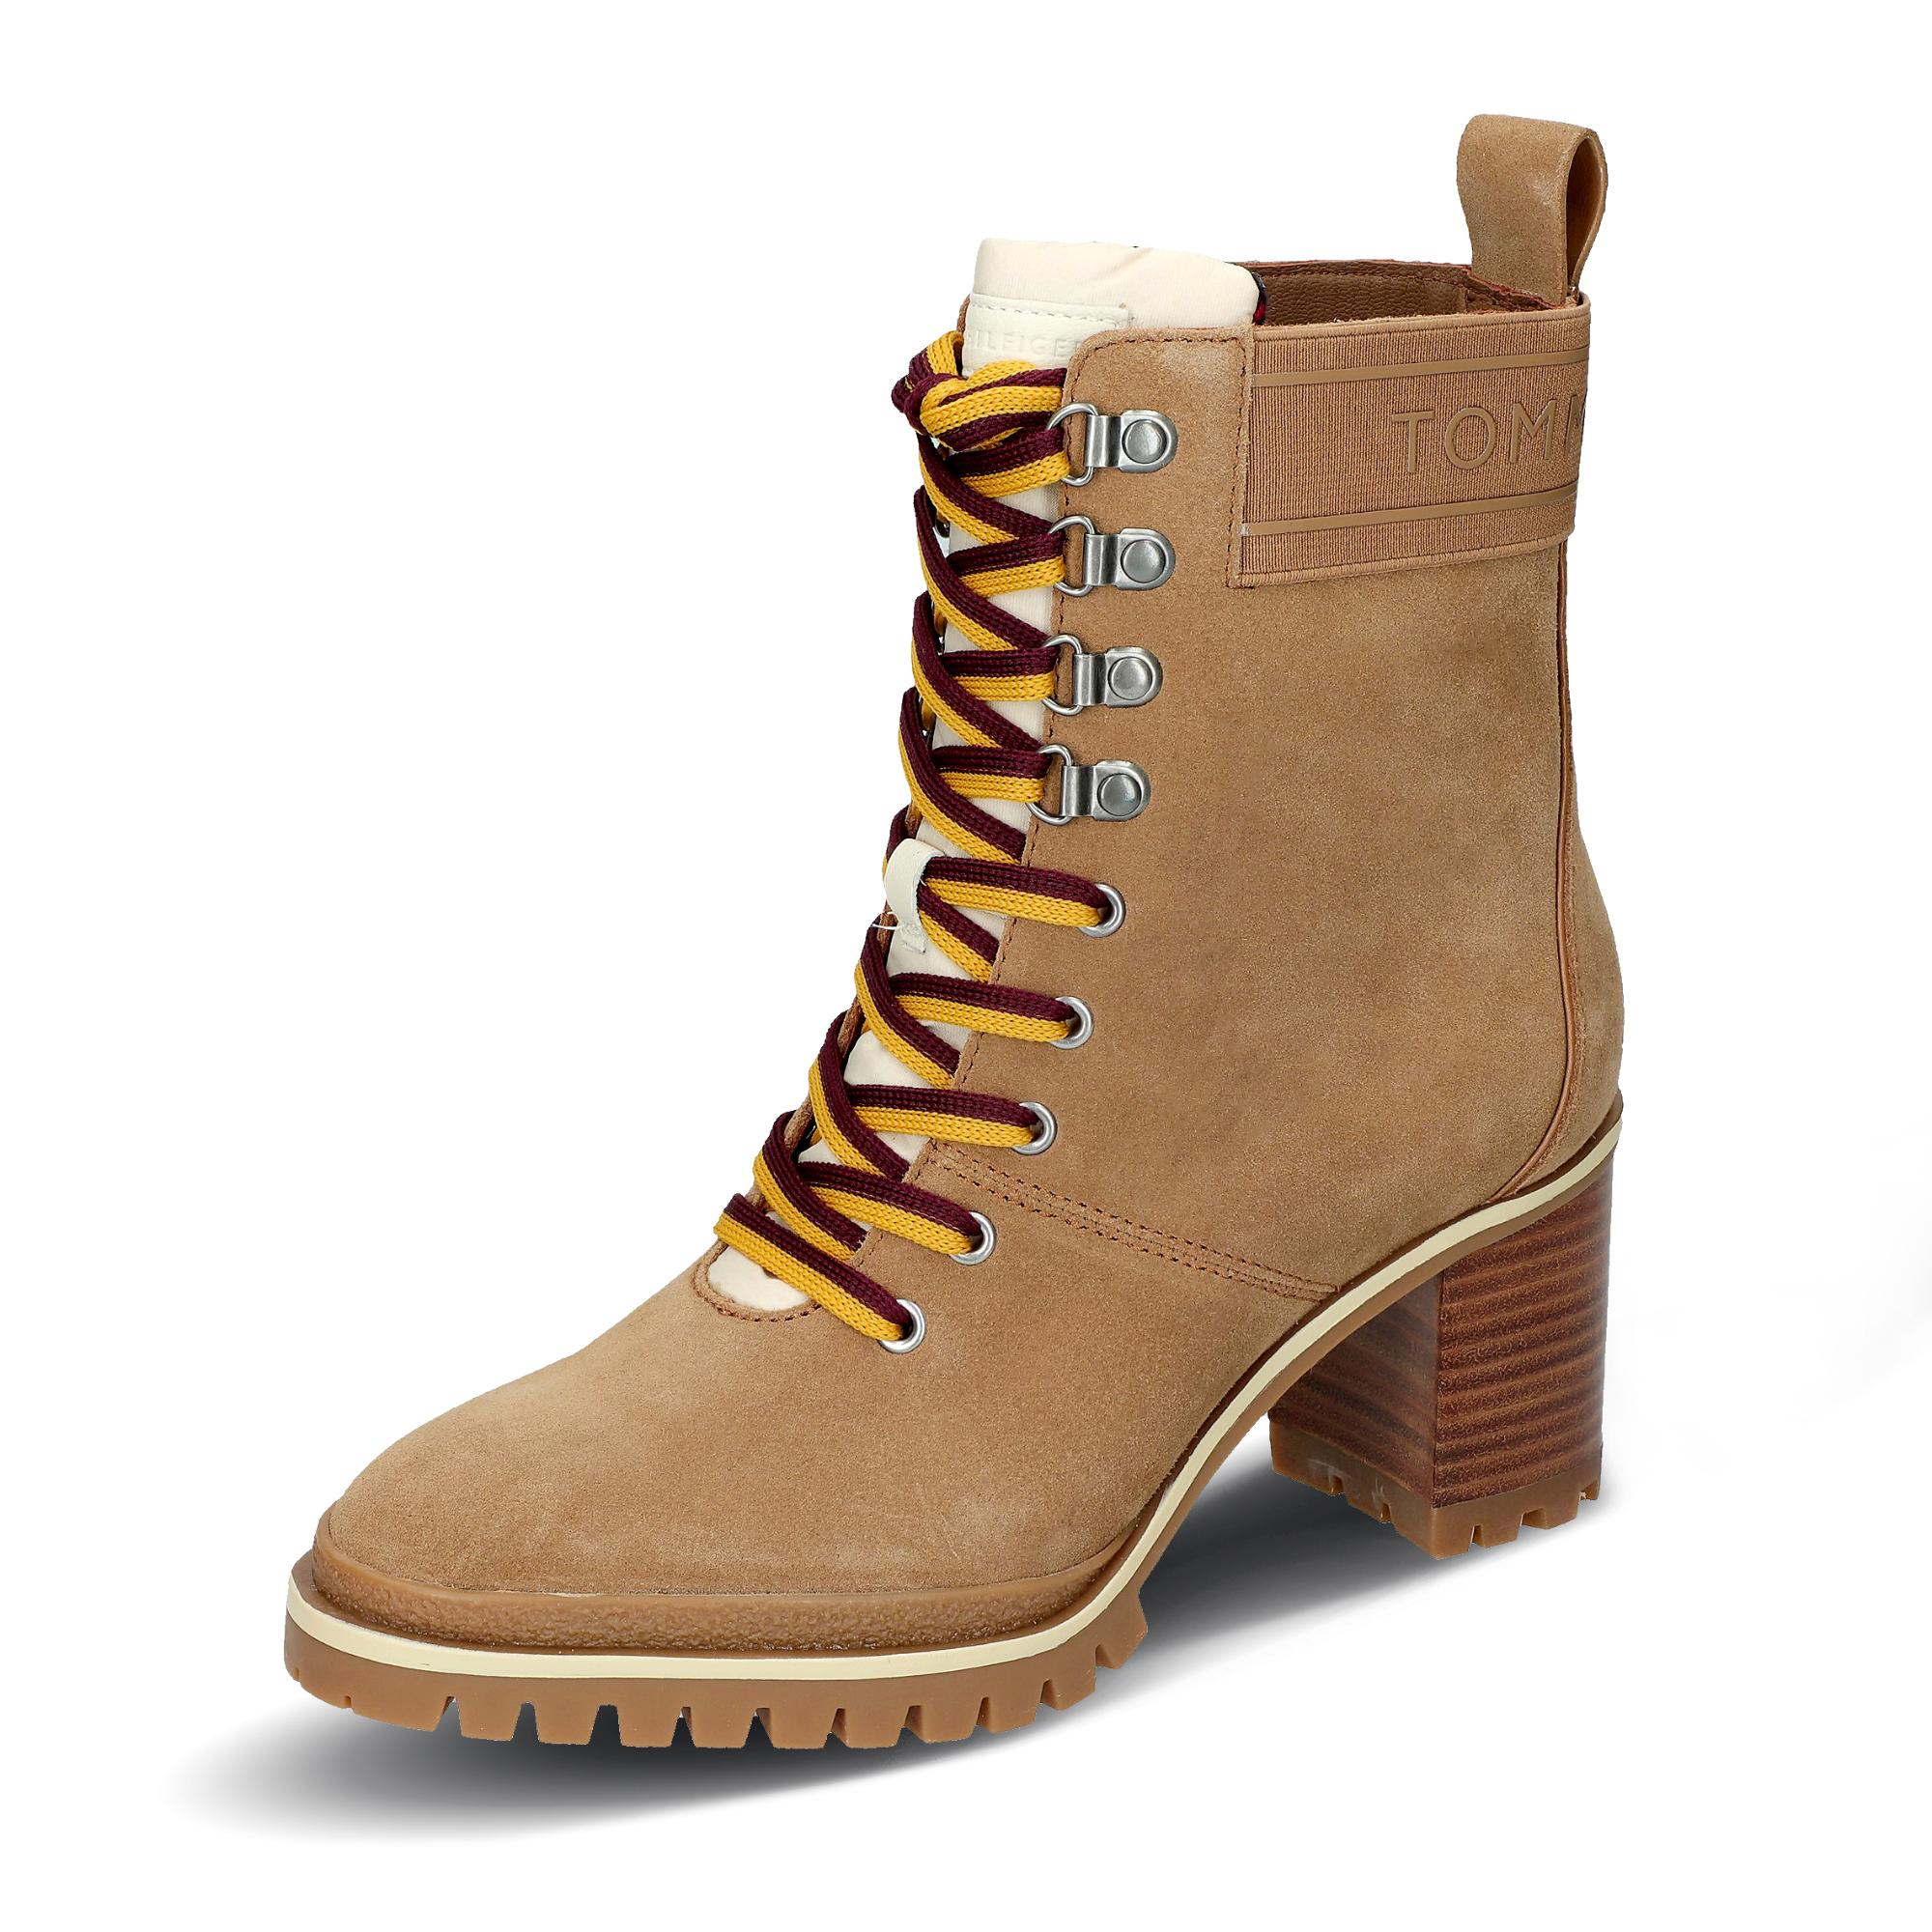 separation shoes 1fe3f 26f46 Tommy Hilfiger Boots - braun | Markenschuhe